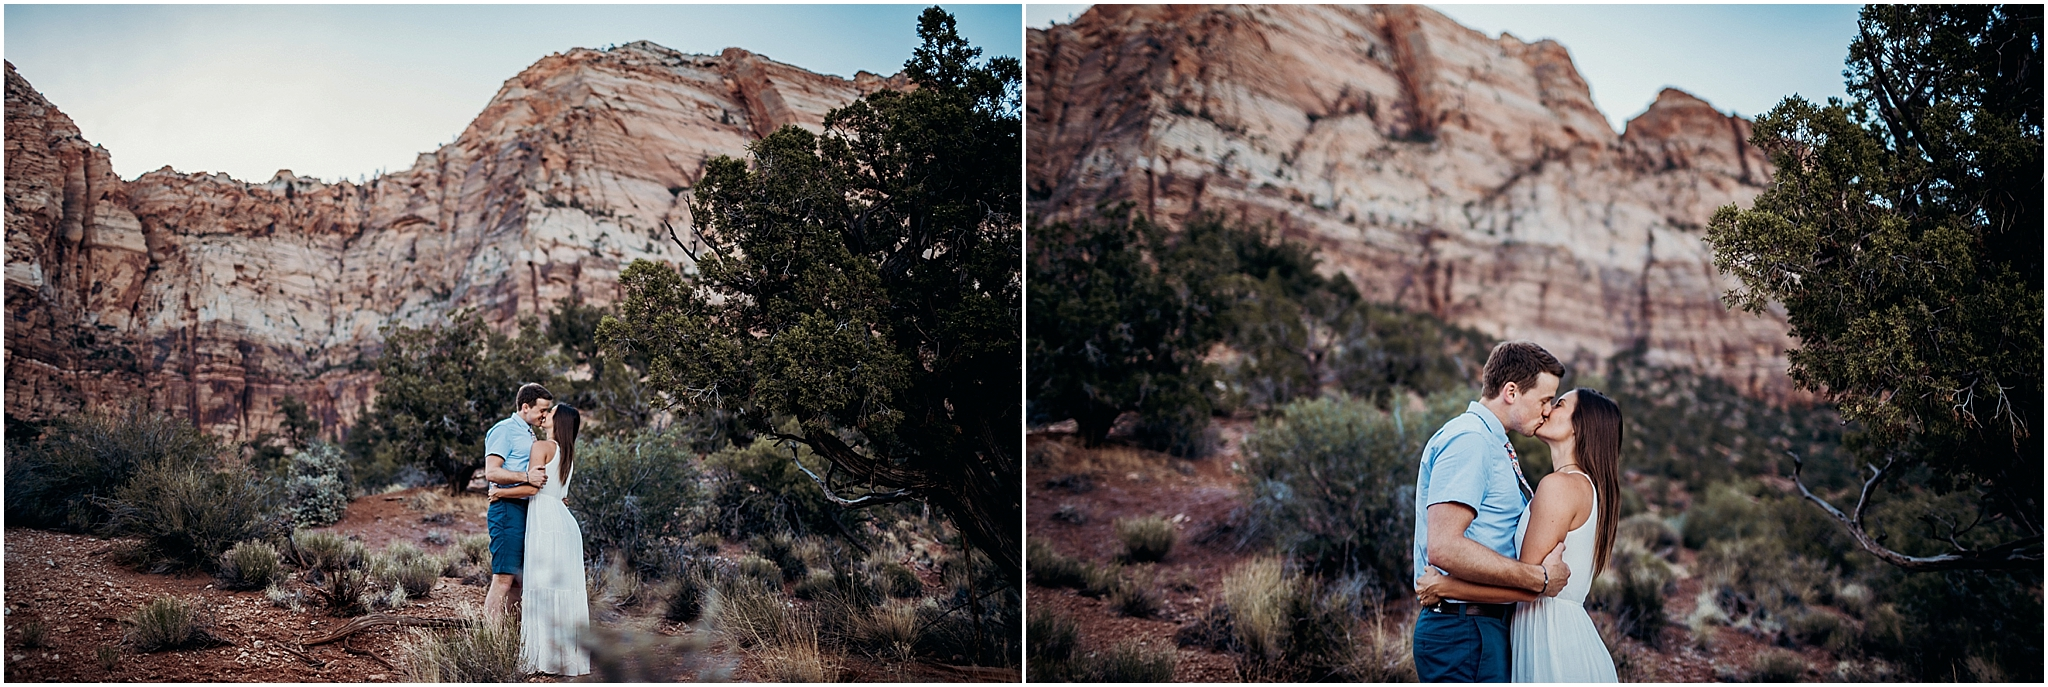 zion national park adventure engagement session zion portraits utah photographer arizona photographer 15.jpg